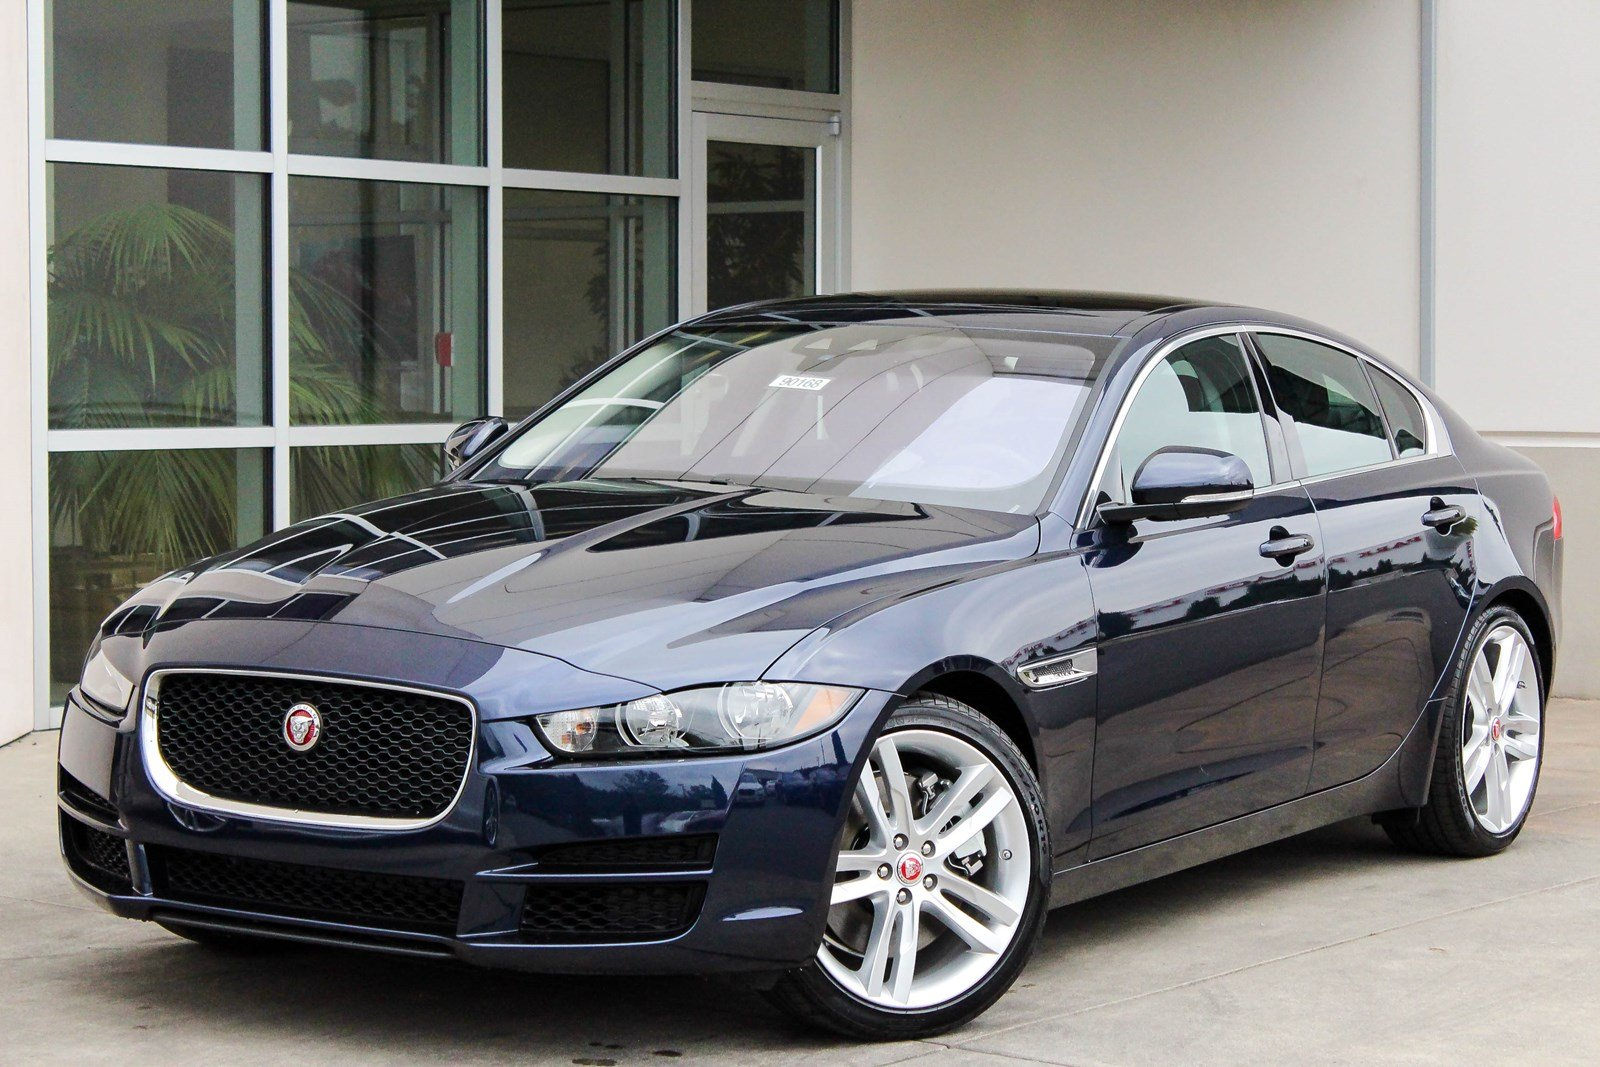 New 2018 Jaguar XE 35t Prestige 4dr Car in Bellevue #90168 ...